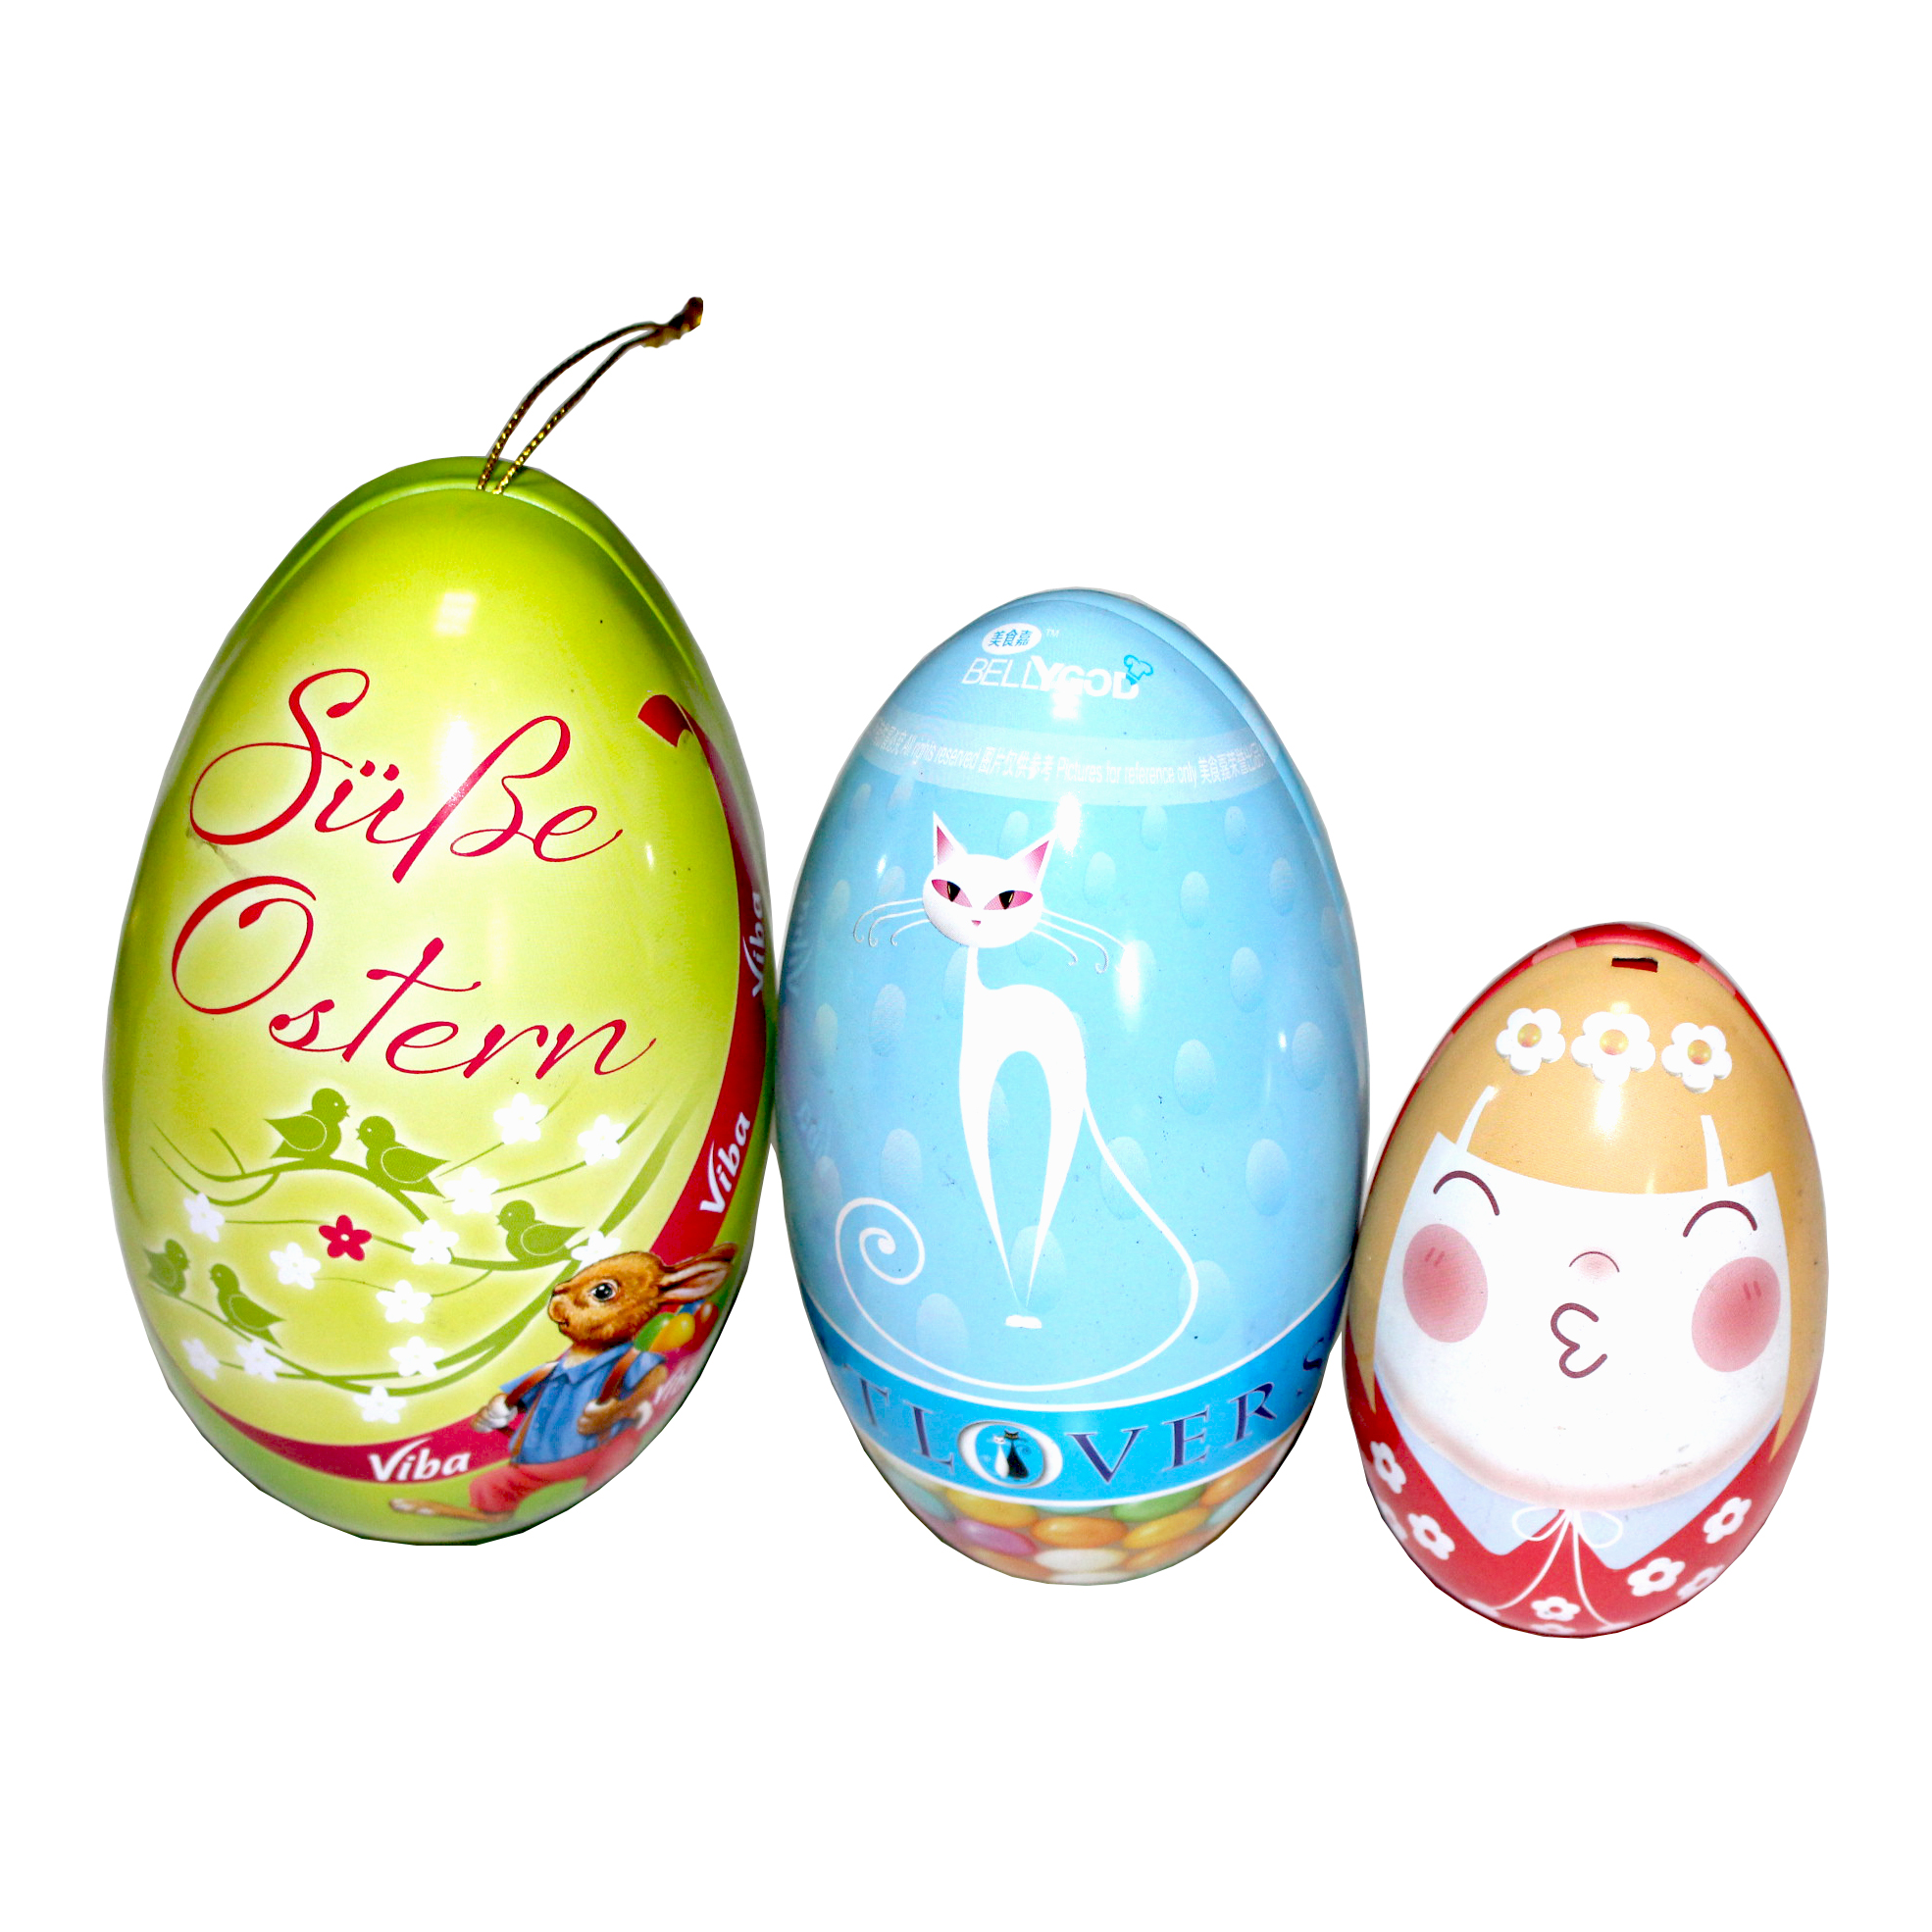 Egg shape candy tins